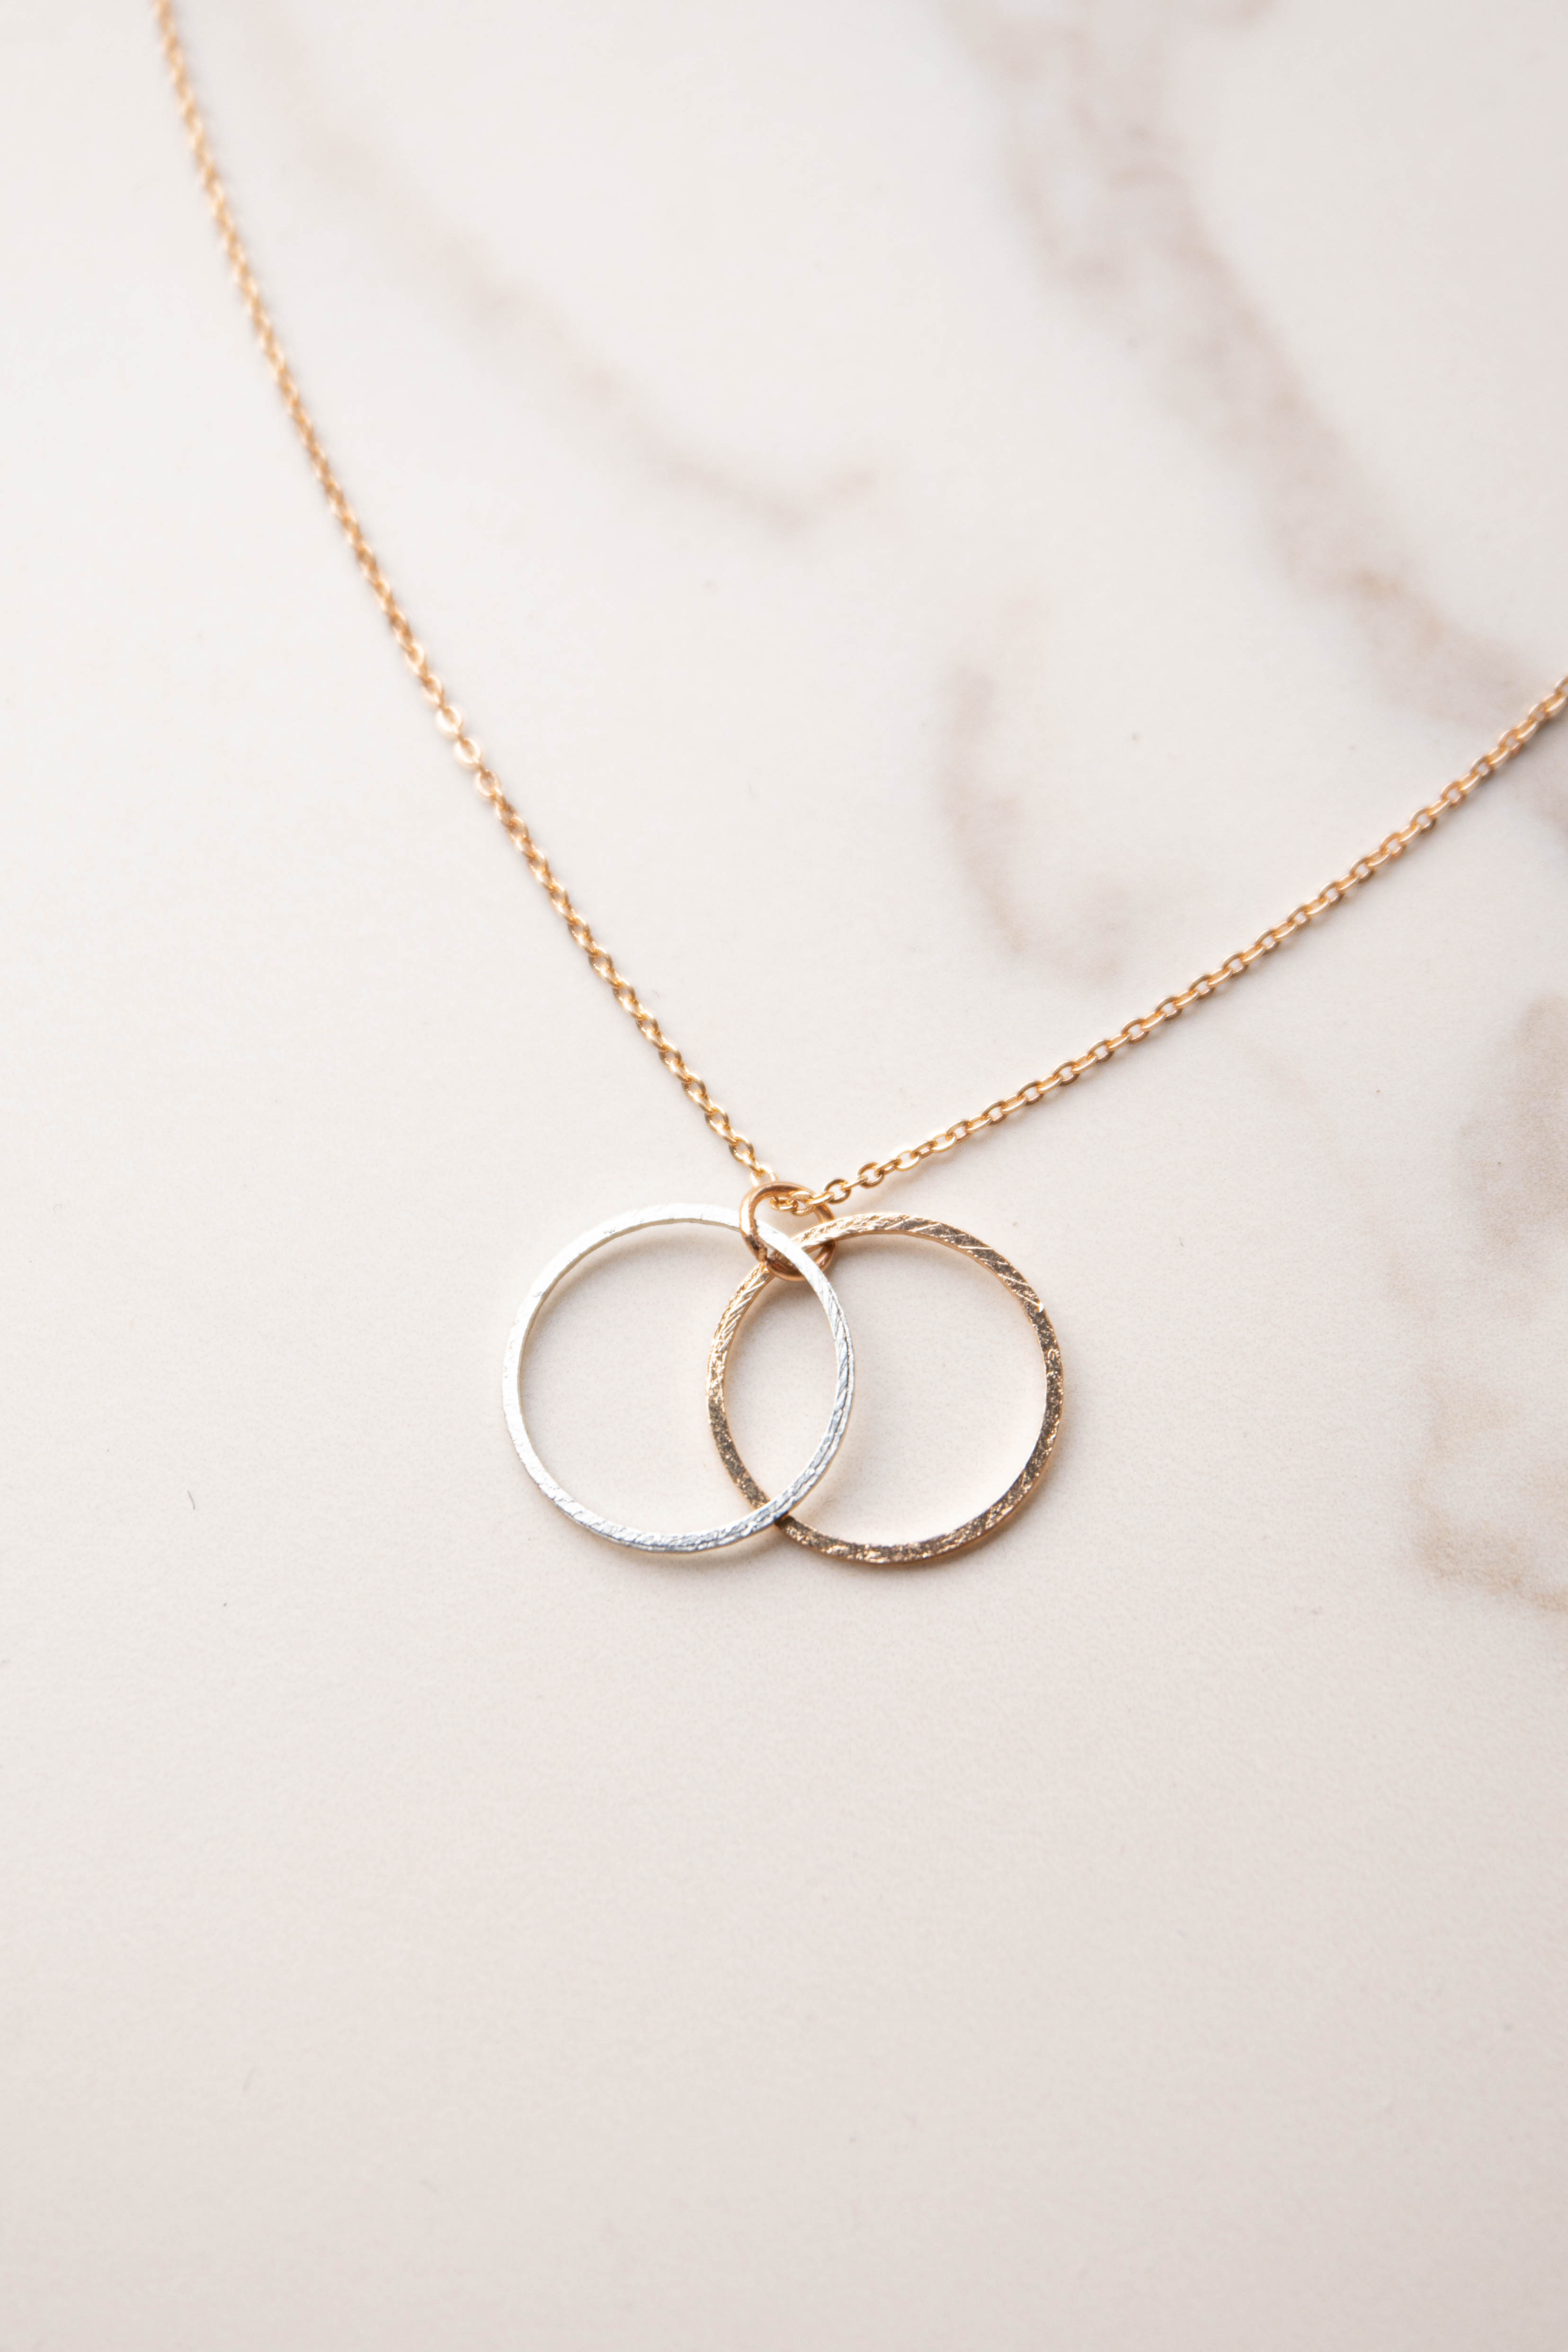 Gold Double Hoop Cable Chain Necklace